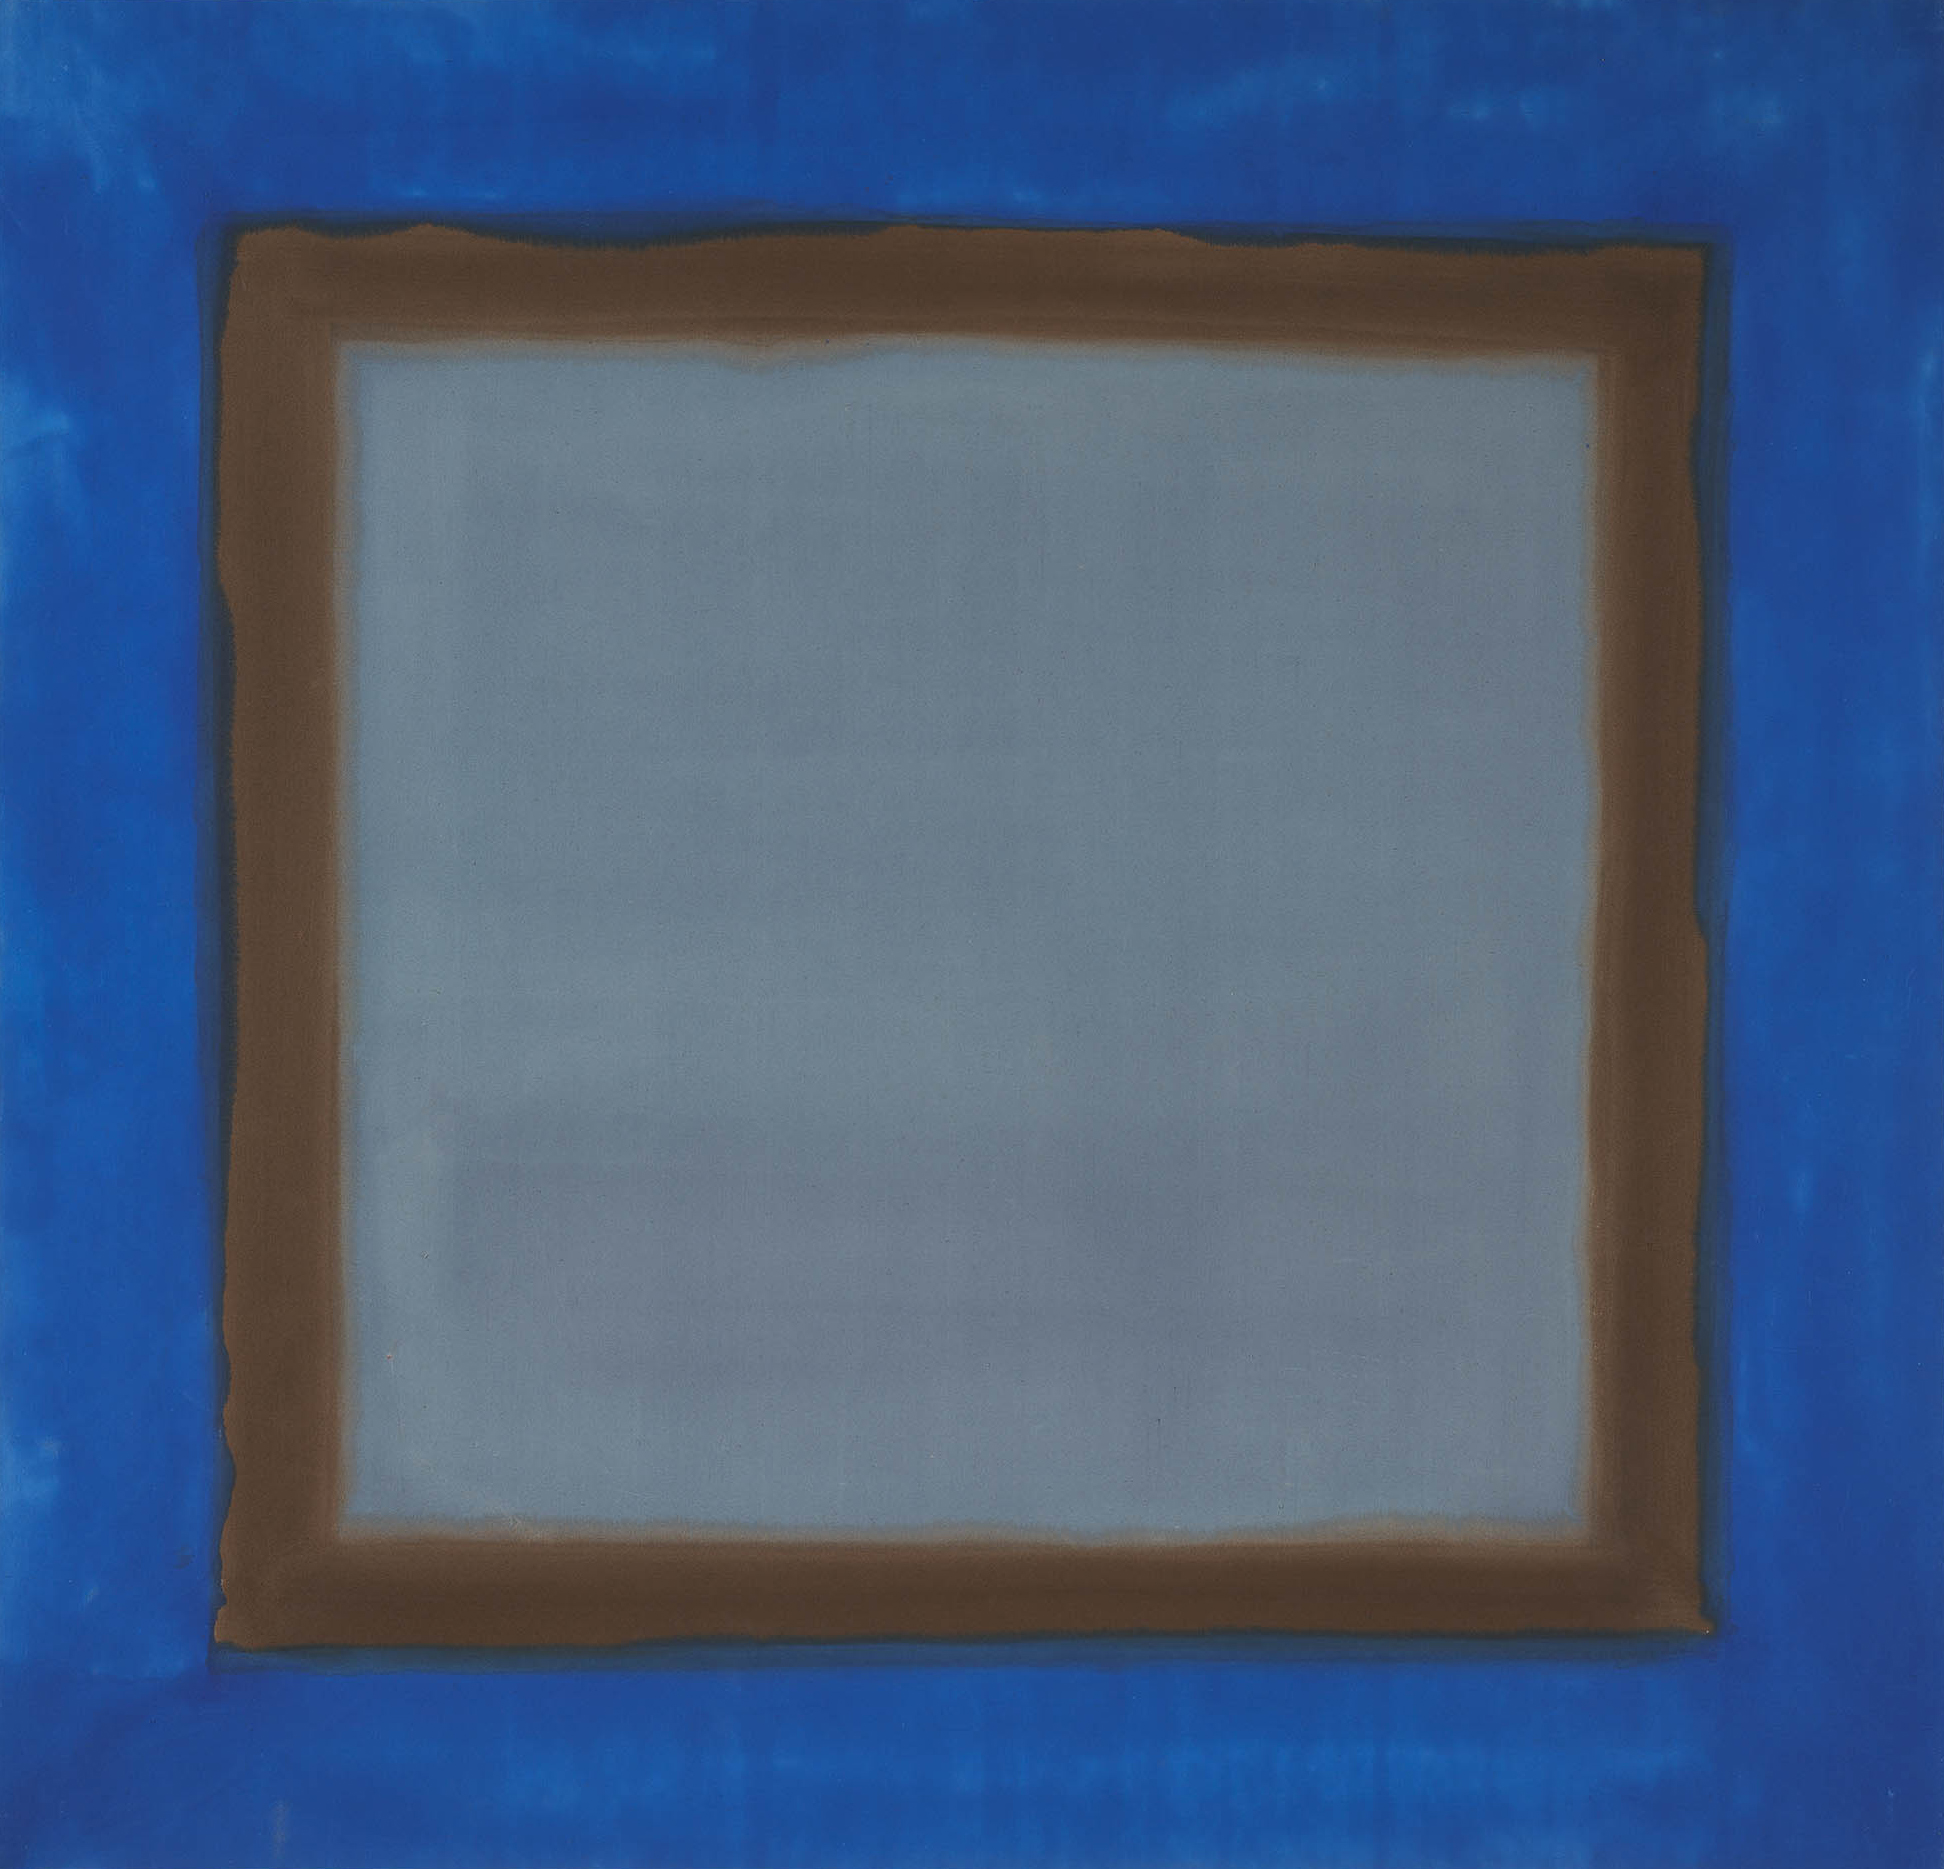 This abstract, almost monochrome painting consists of a large ultramarine square with a central blue-grey square bordered in grey-green. The lighter square, which covers most of the surface, opens a window in the canvas and creates an effect of perspective.